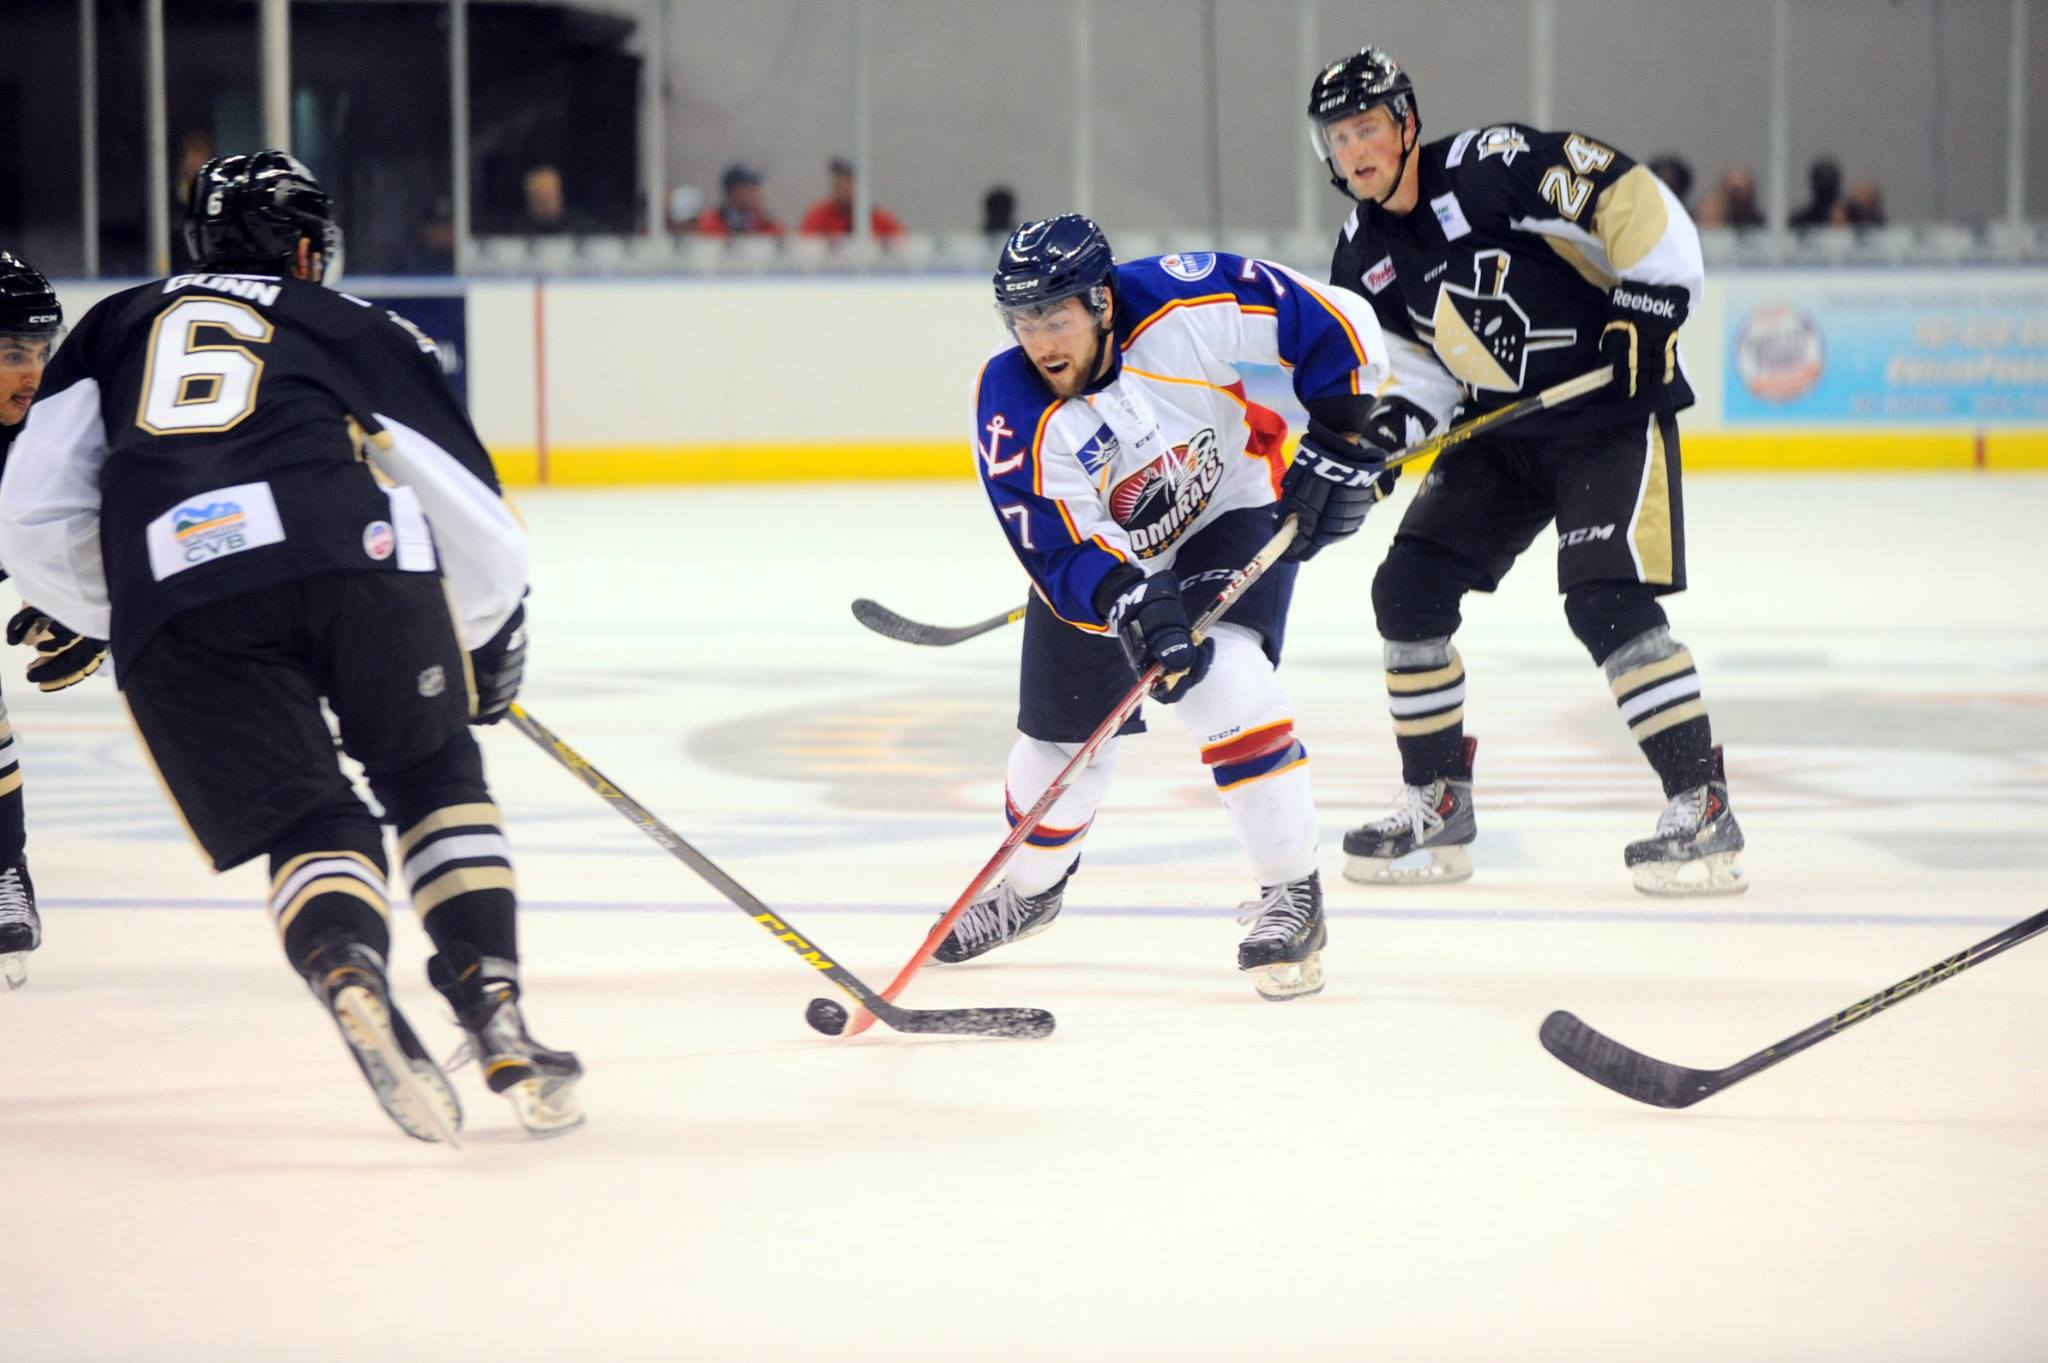 Forward Mathieu Brisebois carries the puck through the Wheeling Nailers' offensive zone during the Norfolk Admirals' Season Opener at Norfolk Scope  October 16, 2015